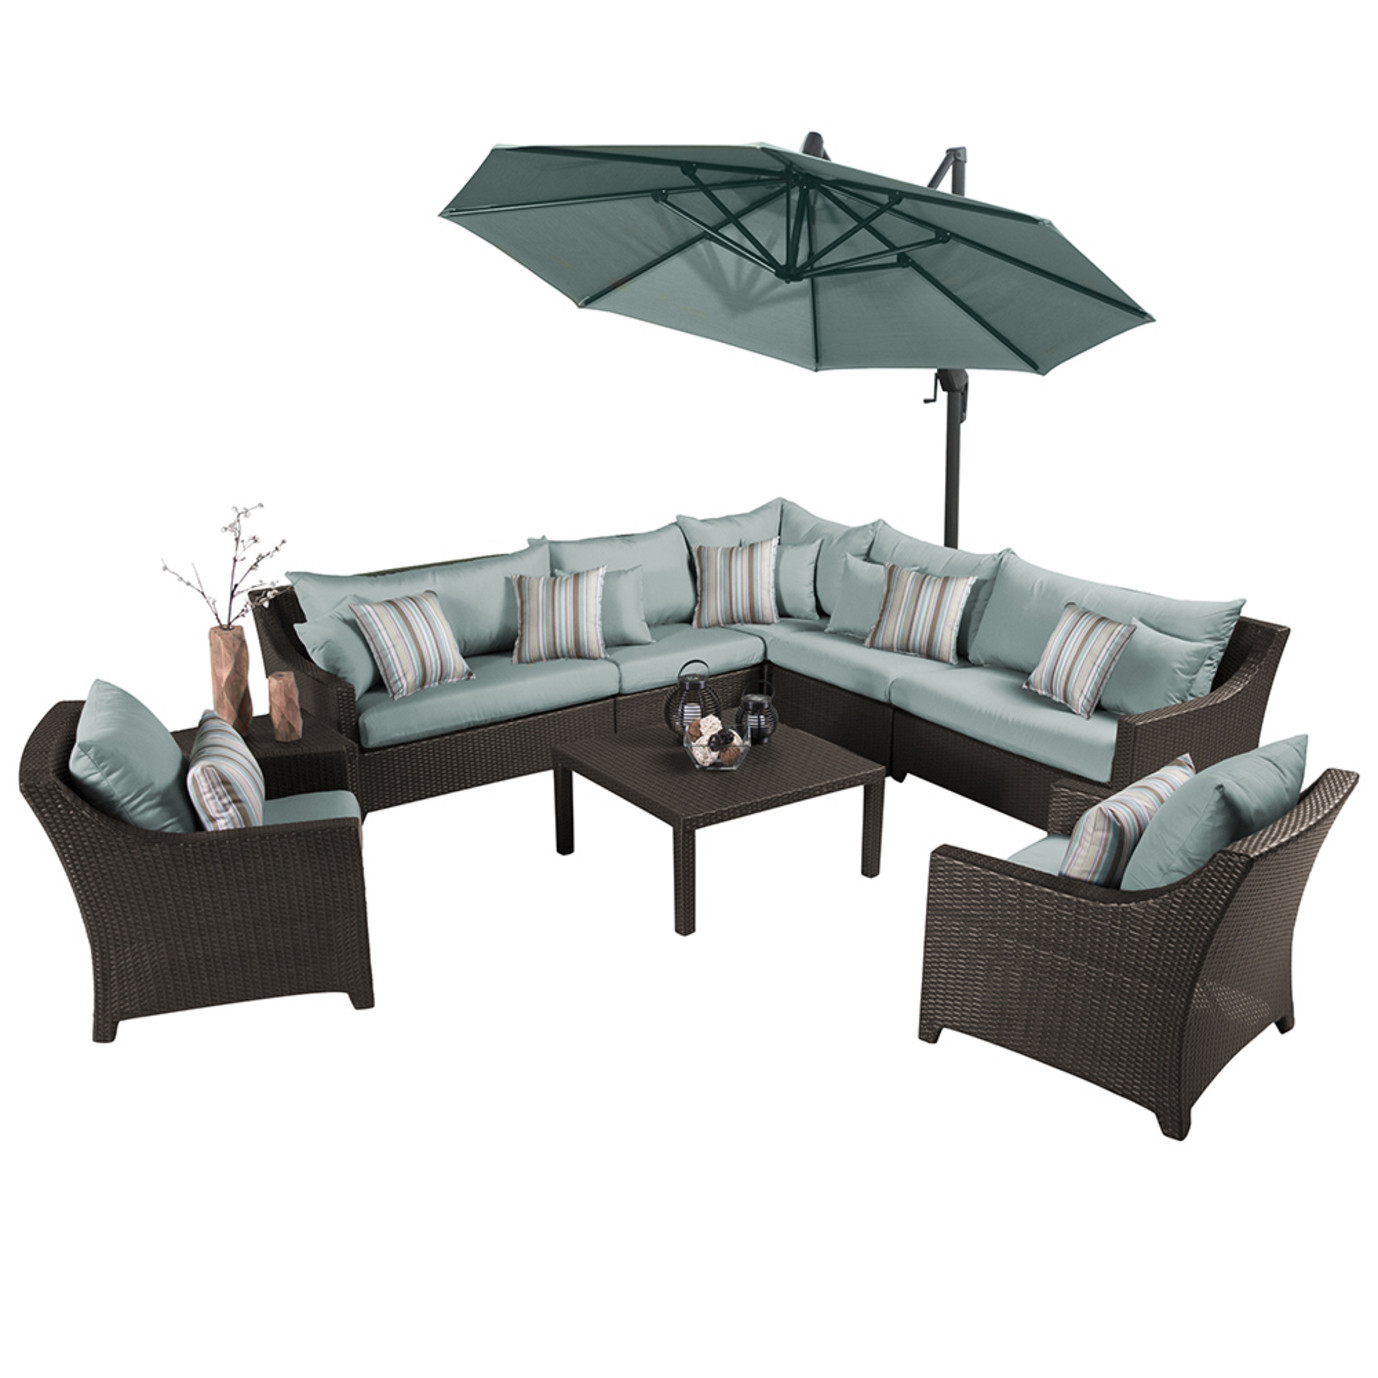 Deco™ 9 Piece Sectional and Club Set with Umbrella